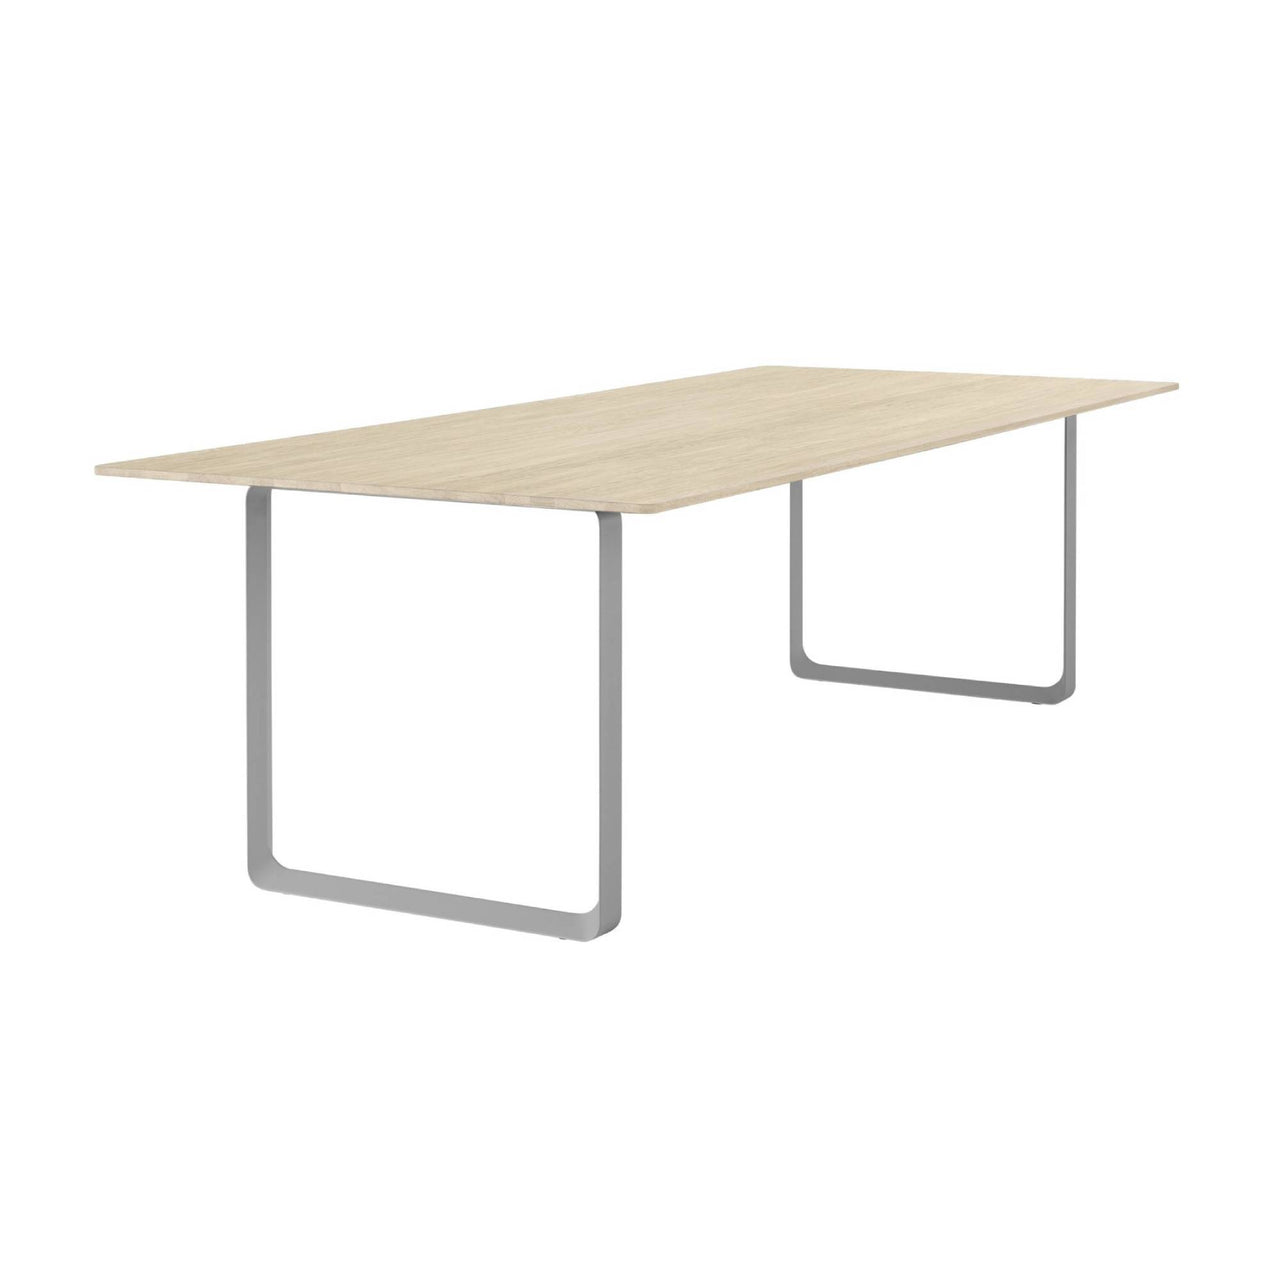 70/70 Table: Solid Oak + Extra Large + Grey